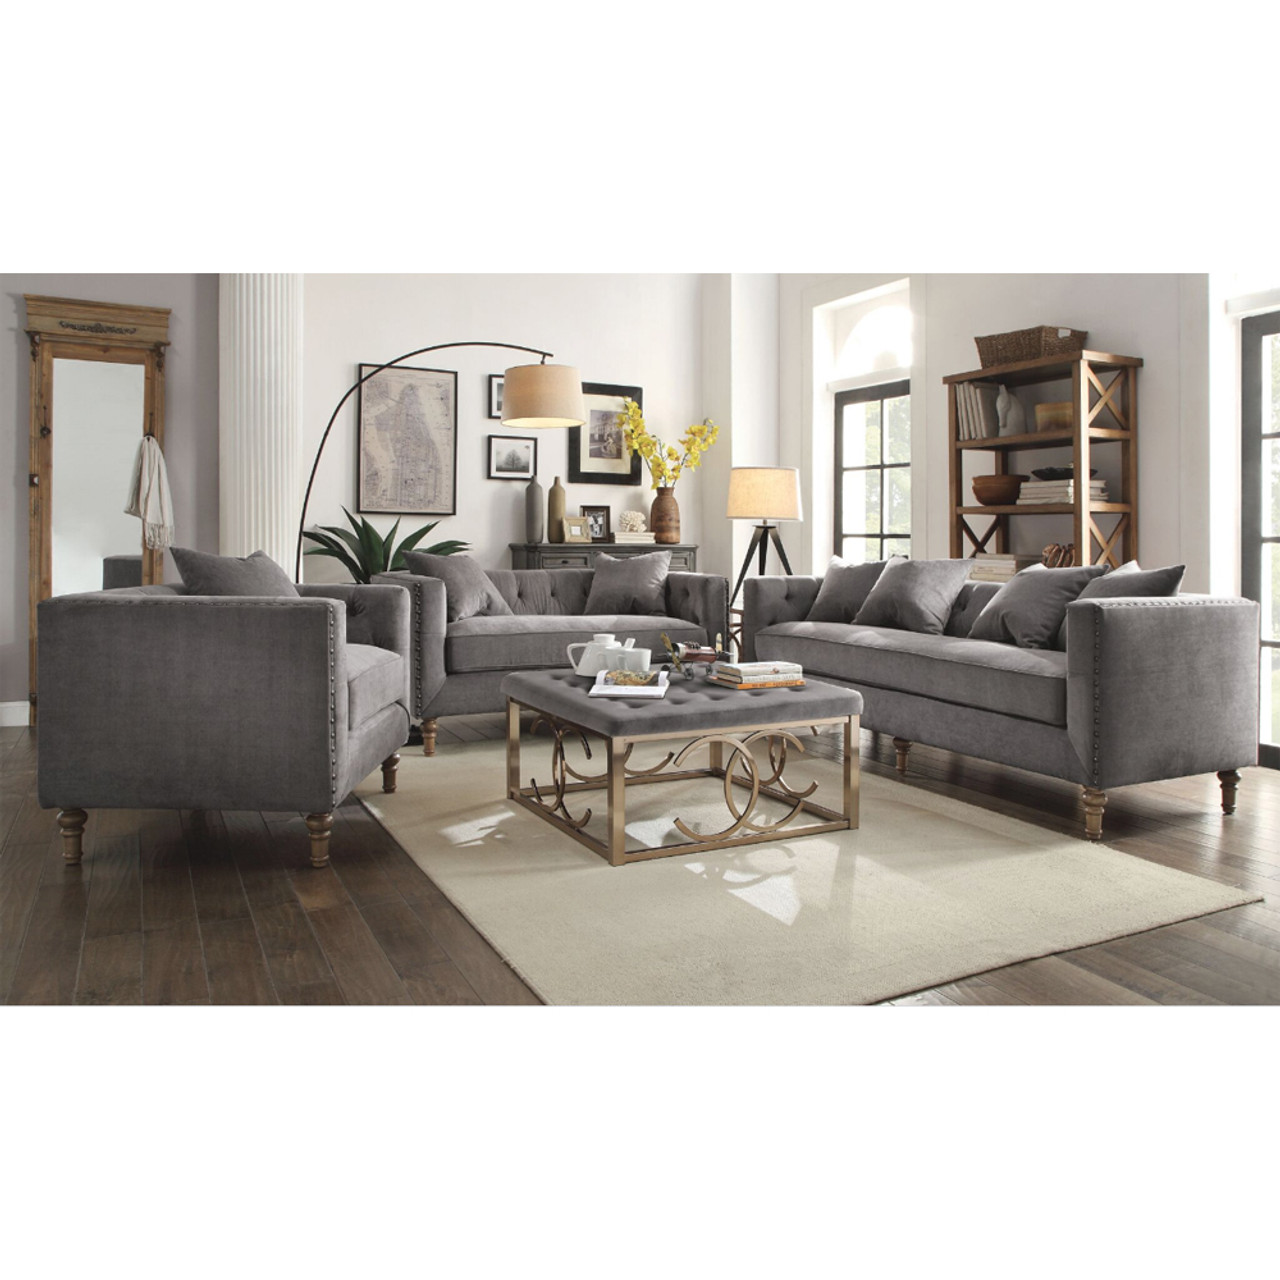 sidonia gray velvet sofa set lounge la. Black Bedroom Furniture Sets. Home Design Ideas